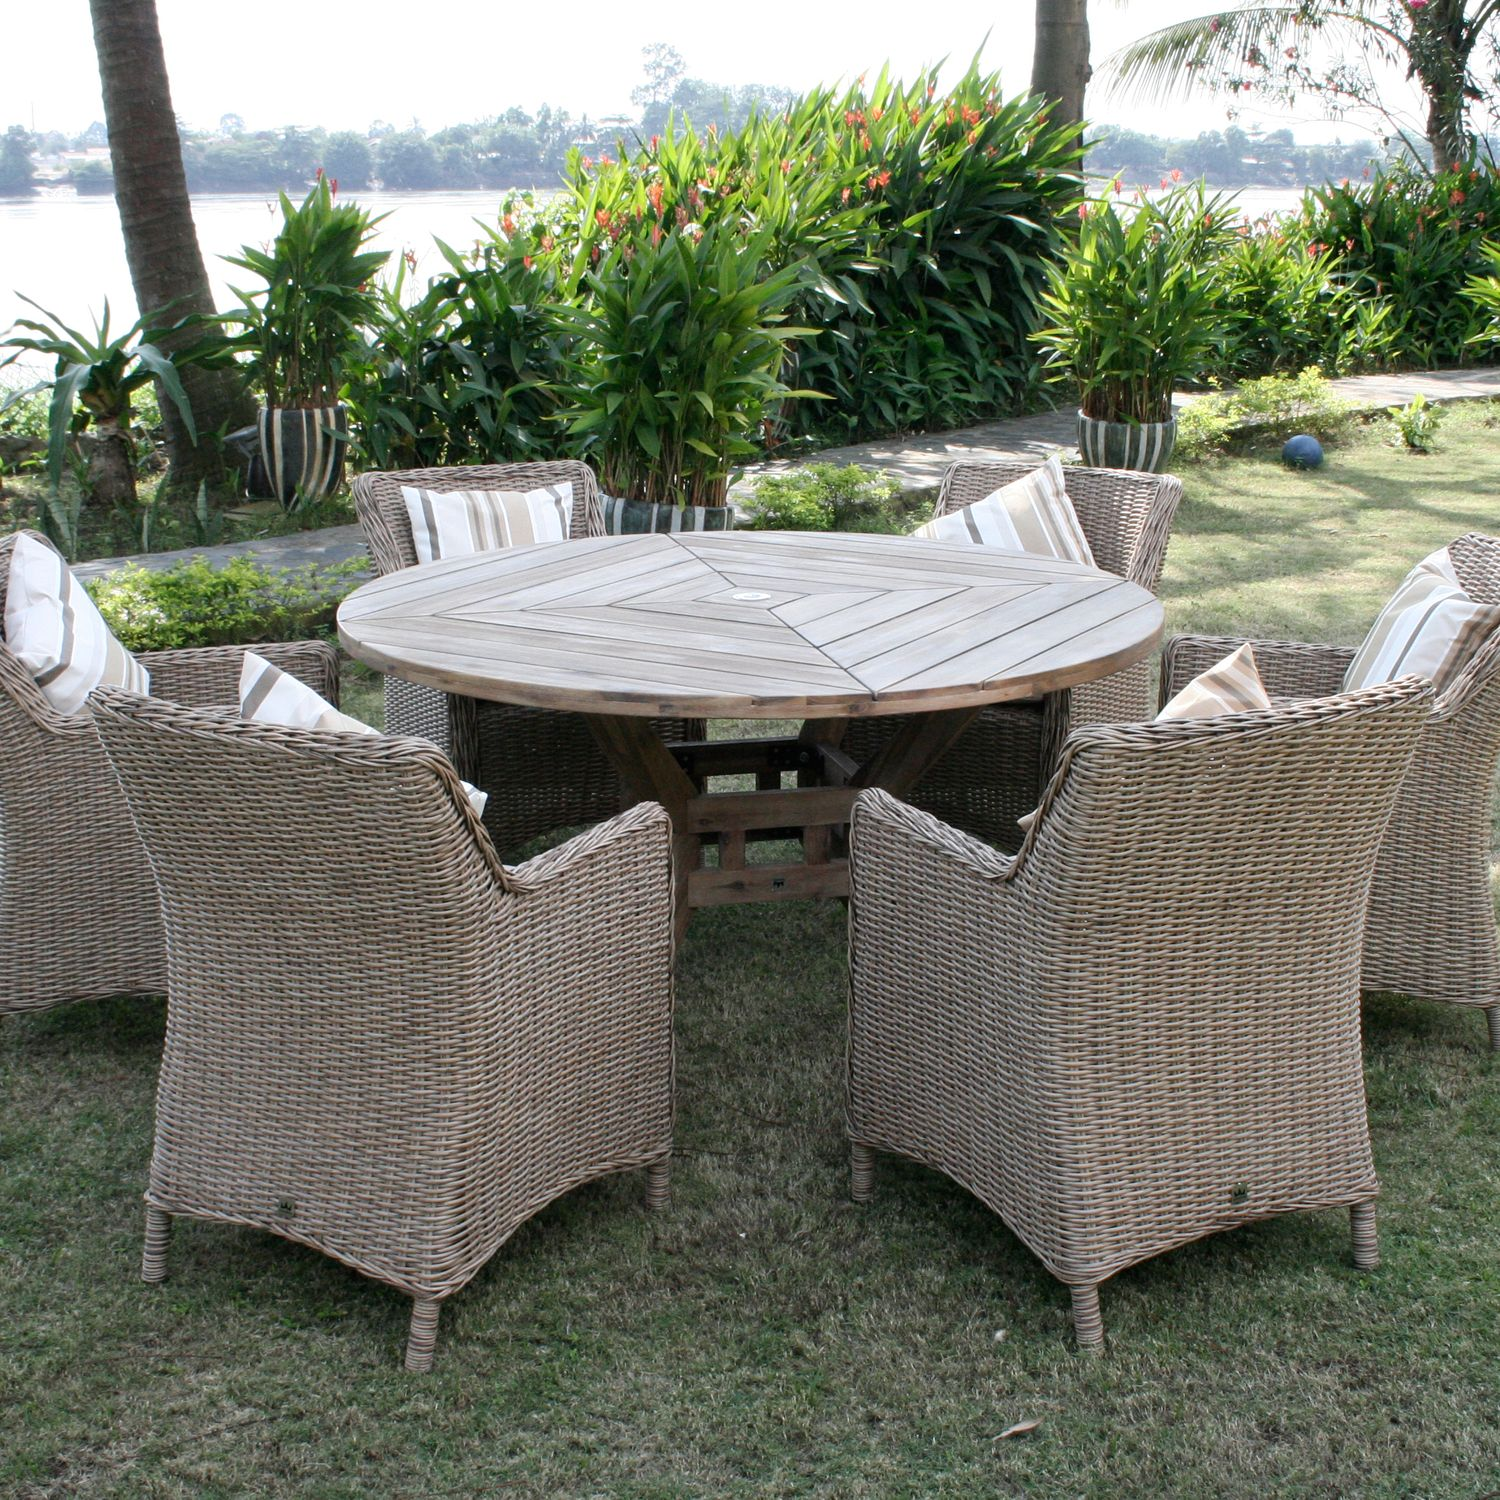 Leisuregrow Hanoi Round 6-Seater Wooden Dining Set